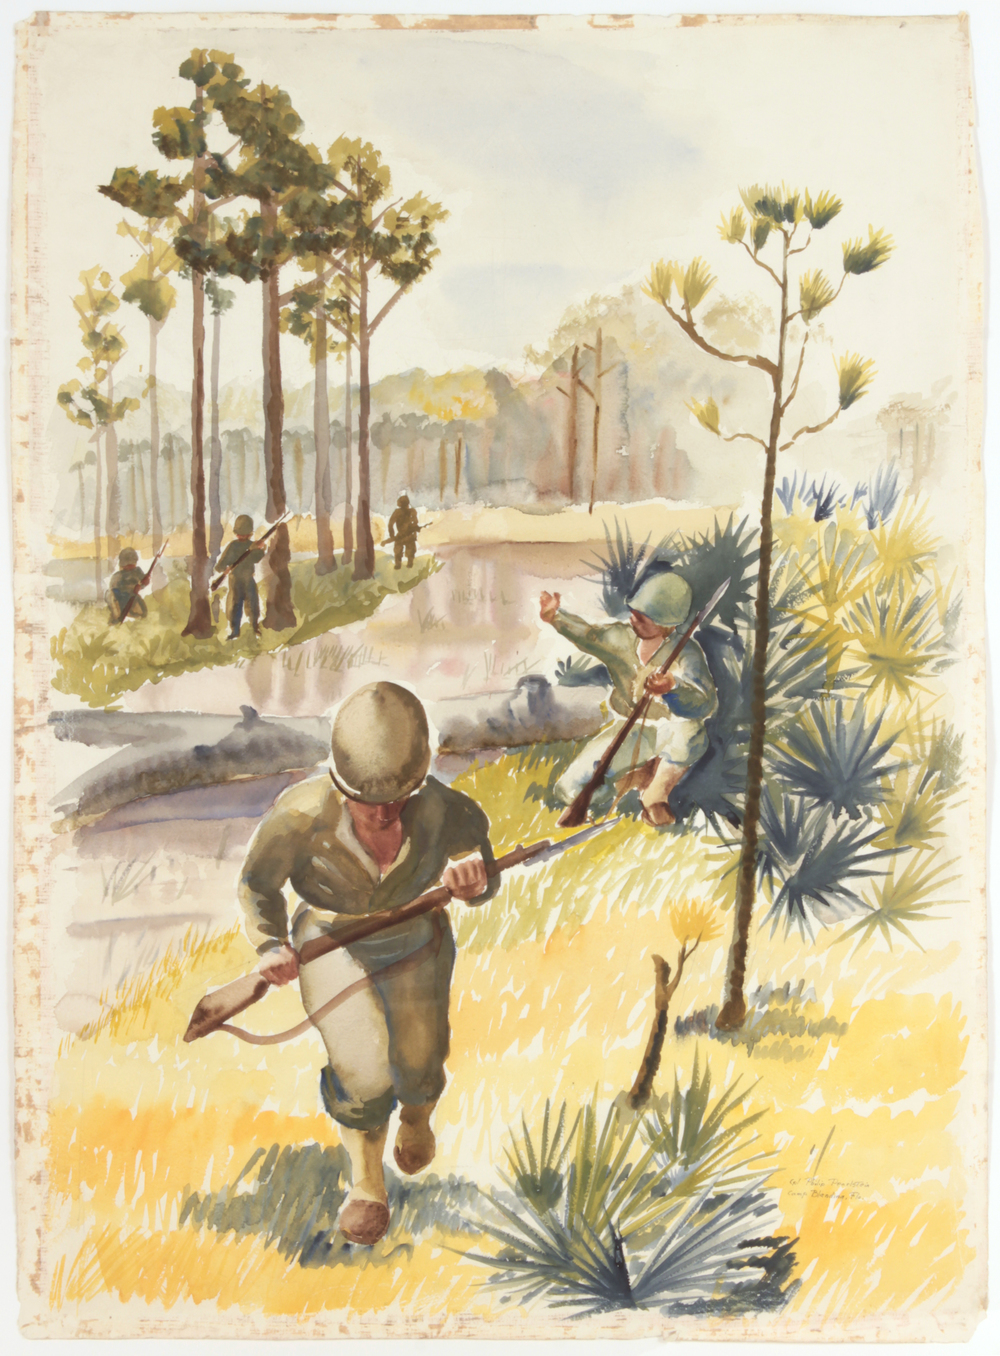 66. 1943, Training in Florida, Watercolor on Paper, 31x22 3:4, PPS815.JPG